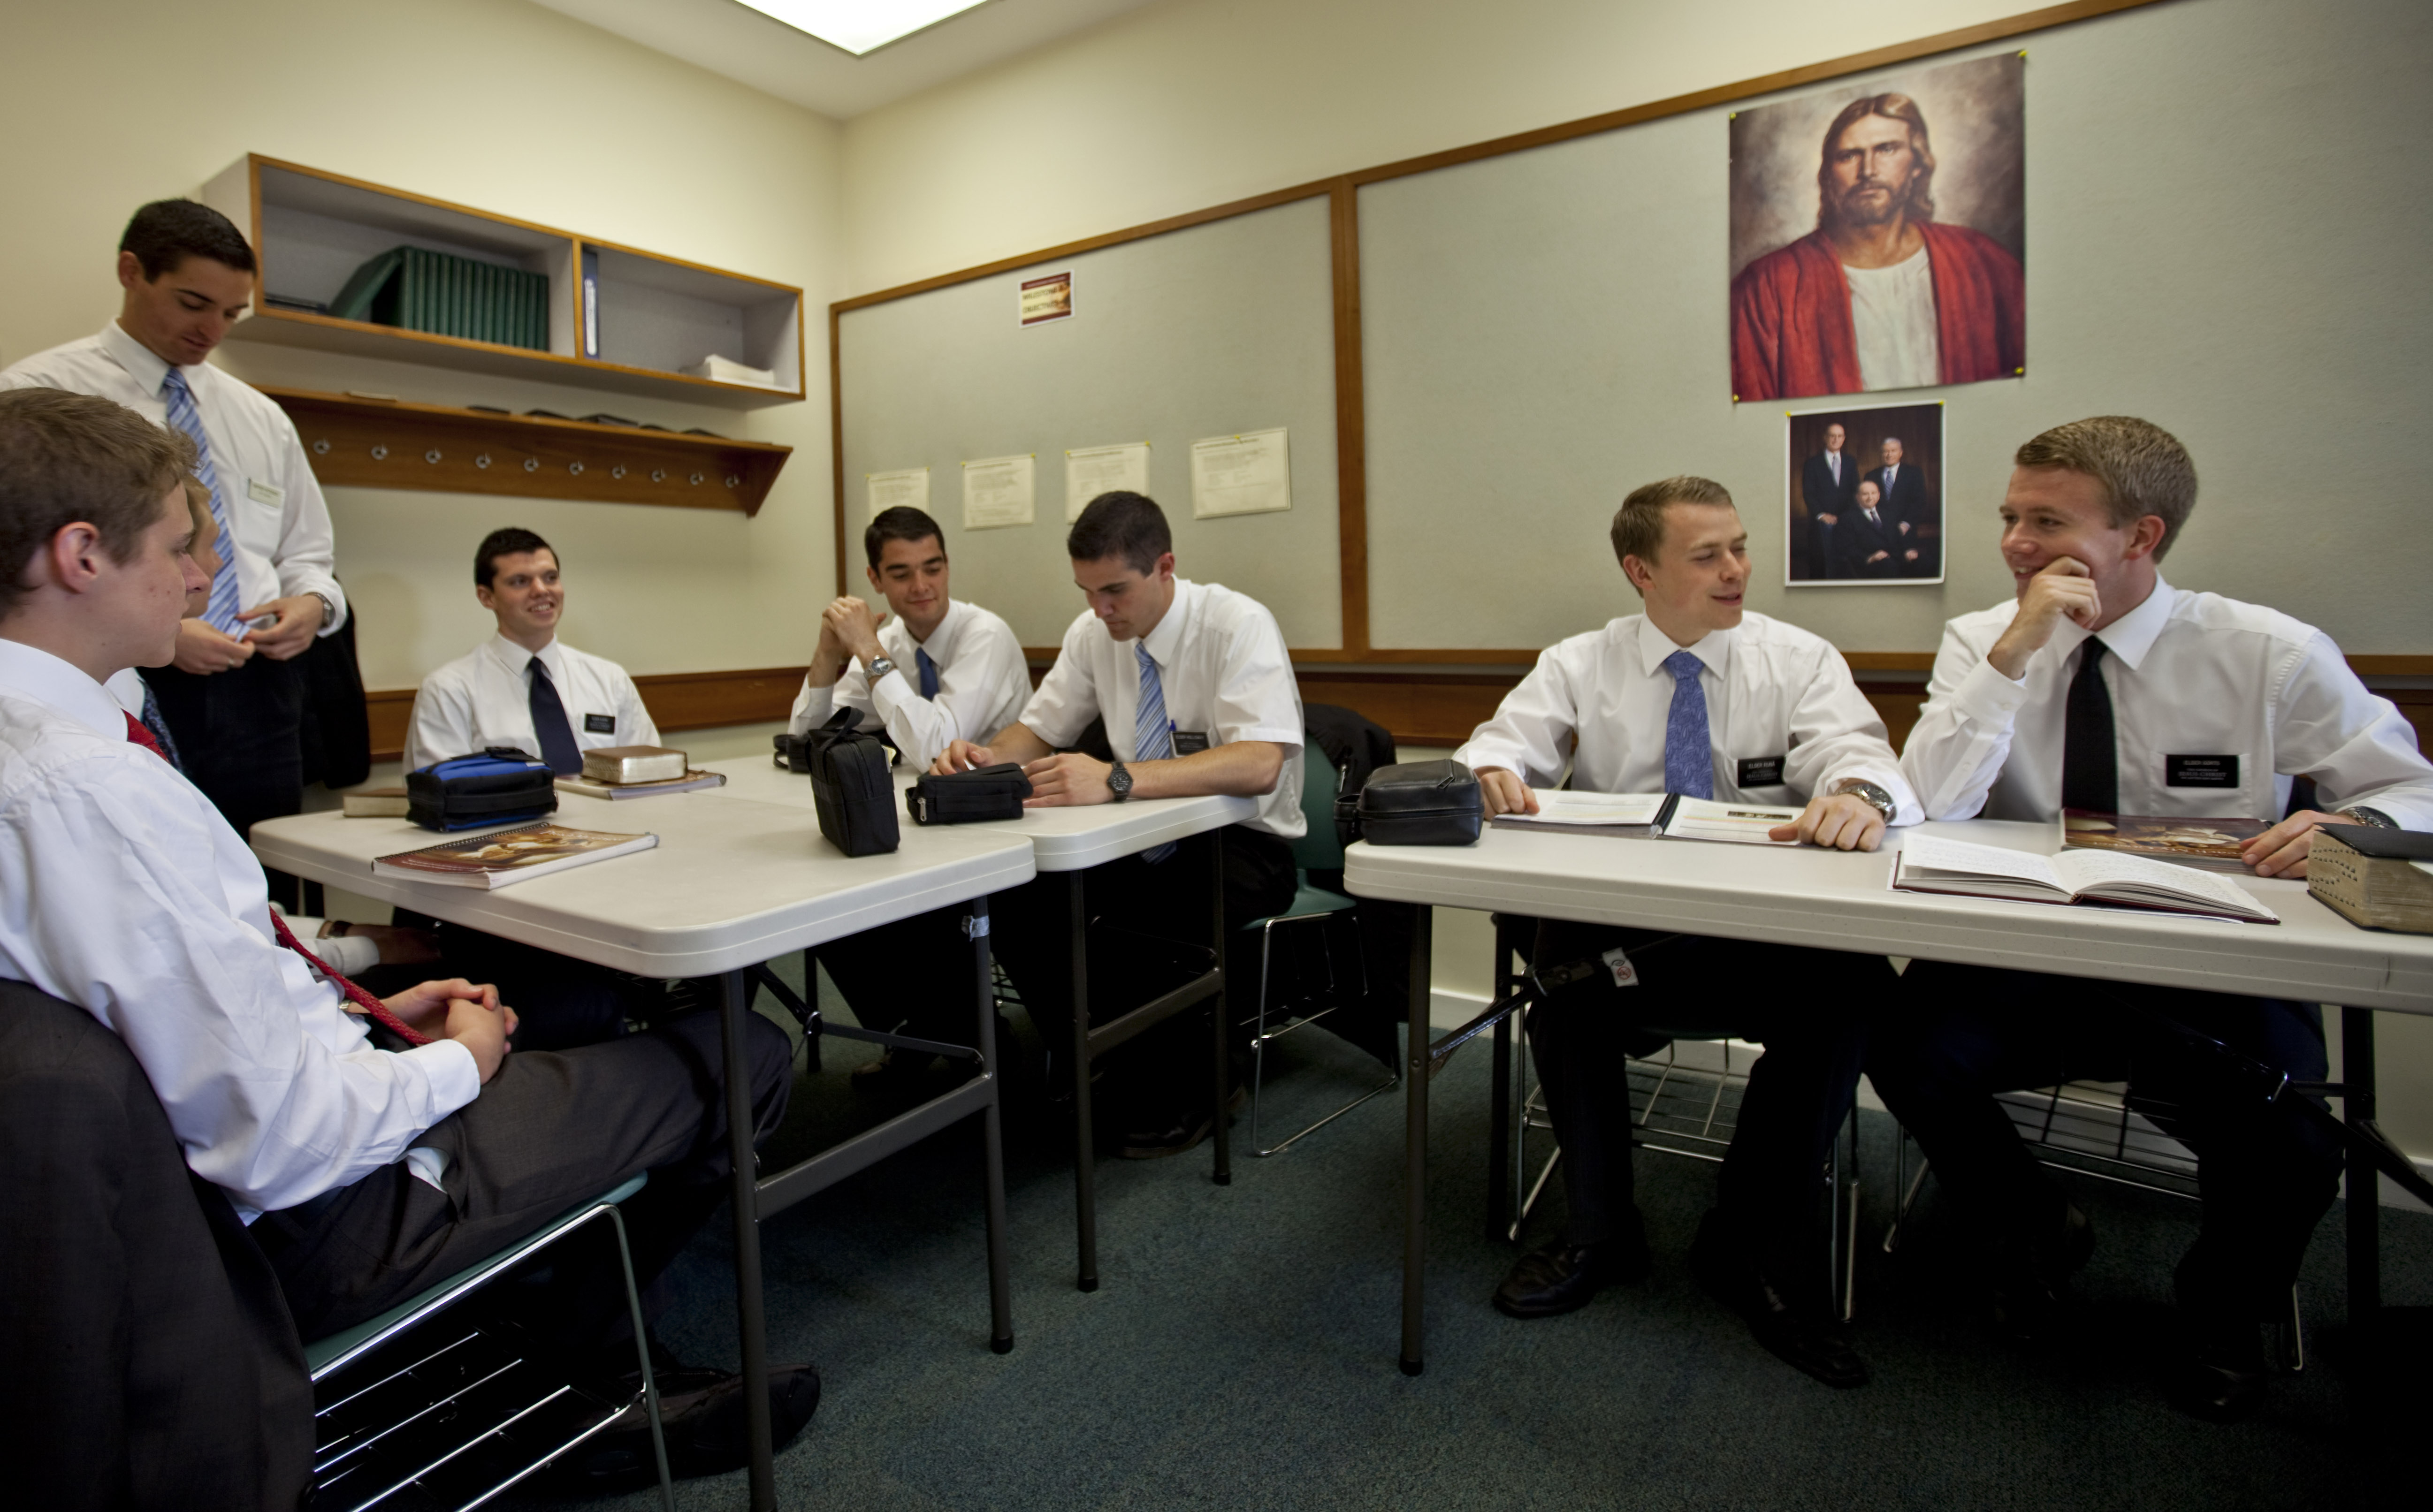 Missionaries in training will be housed at Raintree and Wyview apartments to accomodate their rising numbers. (Photo courtesy LDS Church)